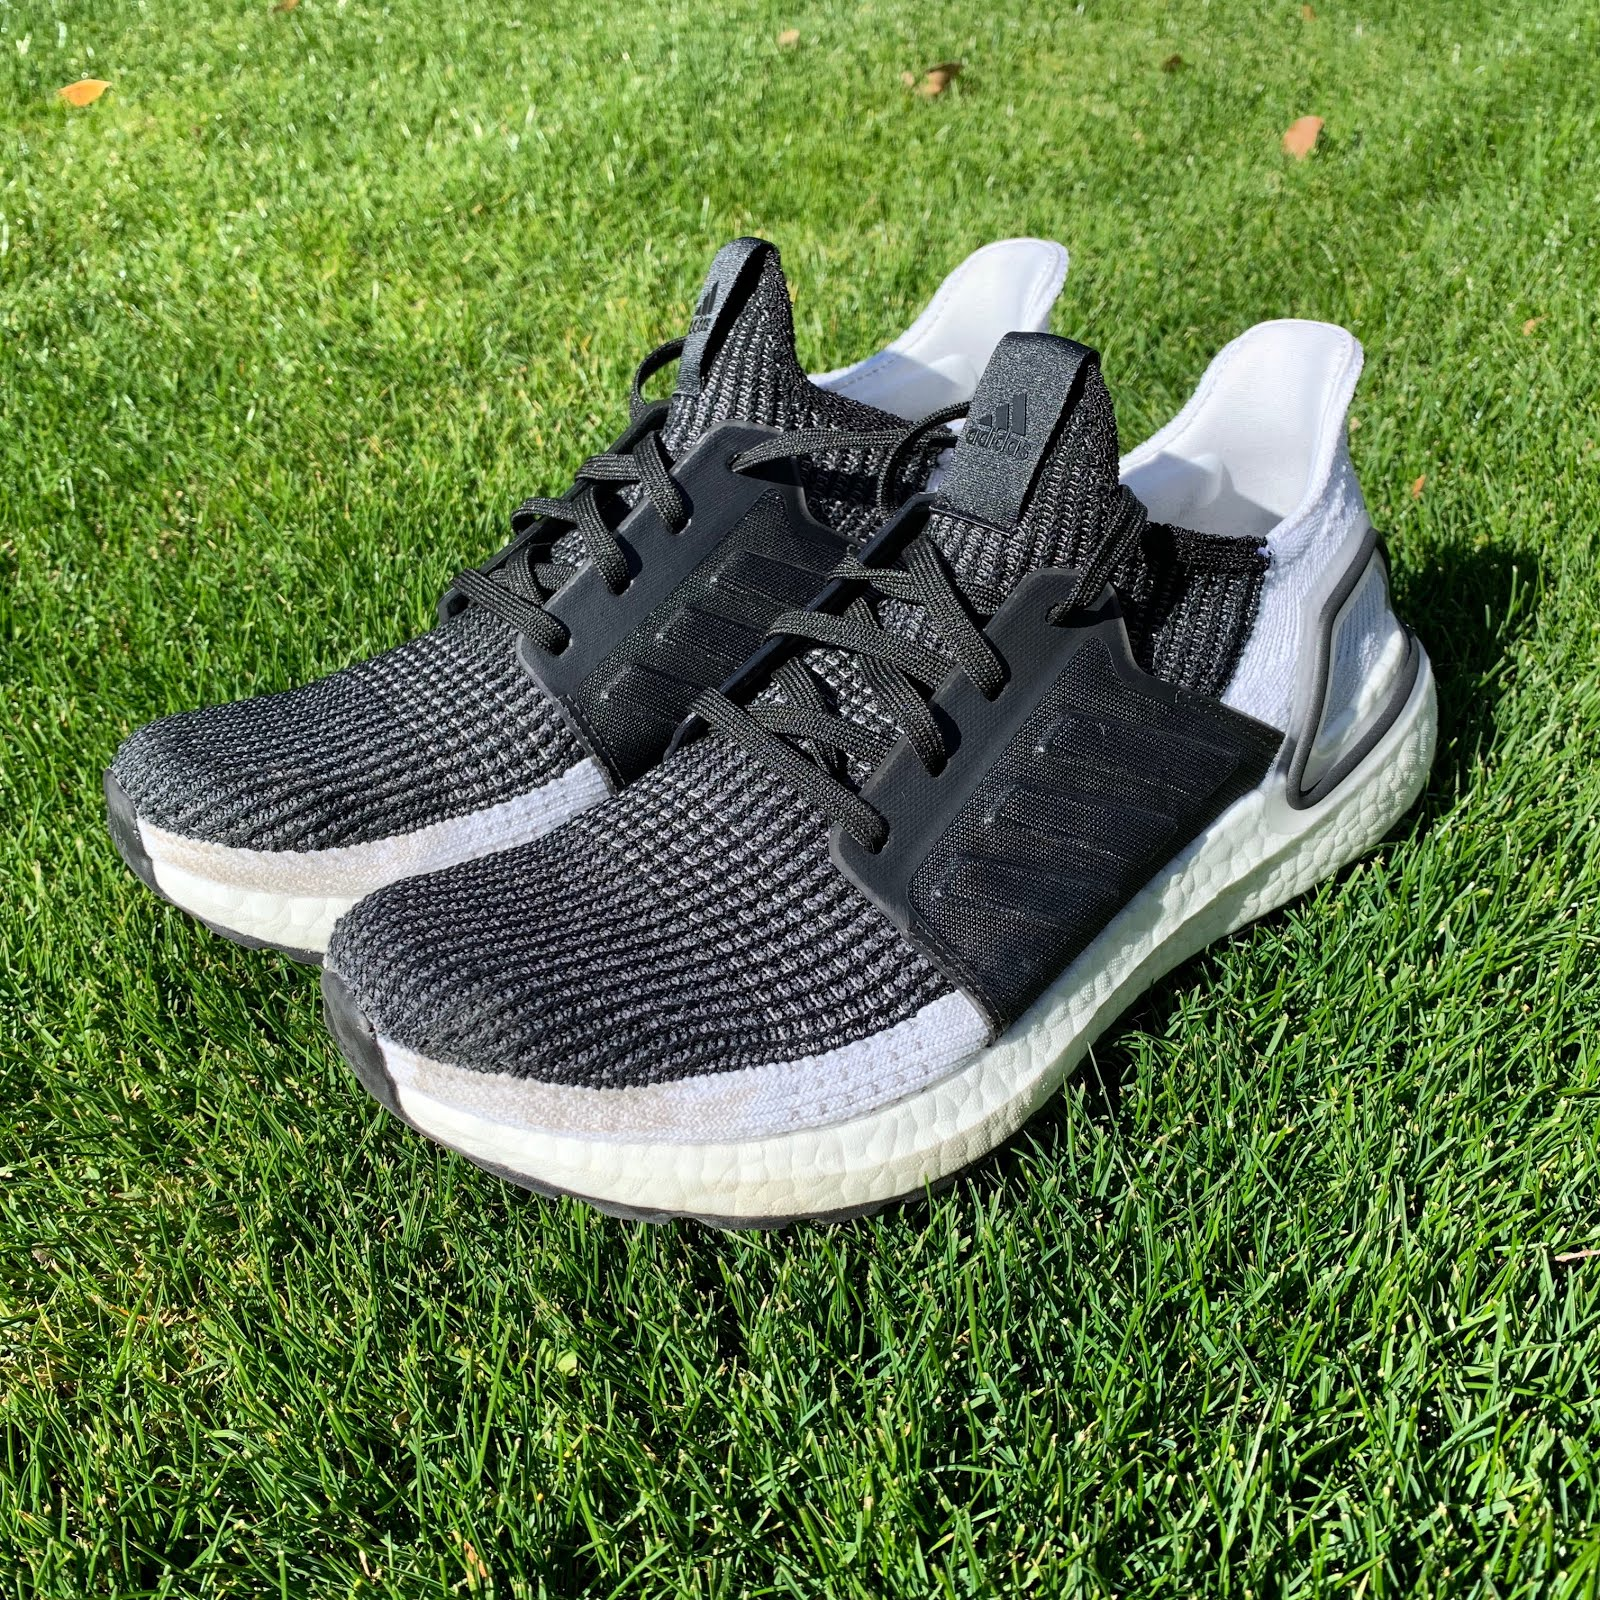 8045262e3daa7c Many runners have held the Ultra Boost as a lifestyle sneaker